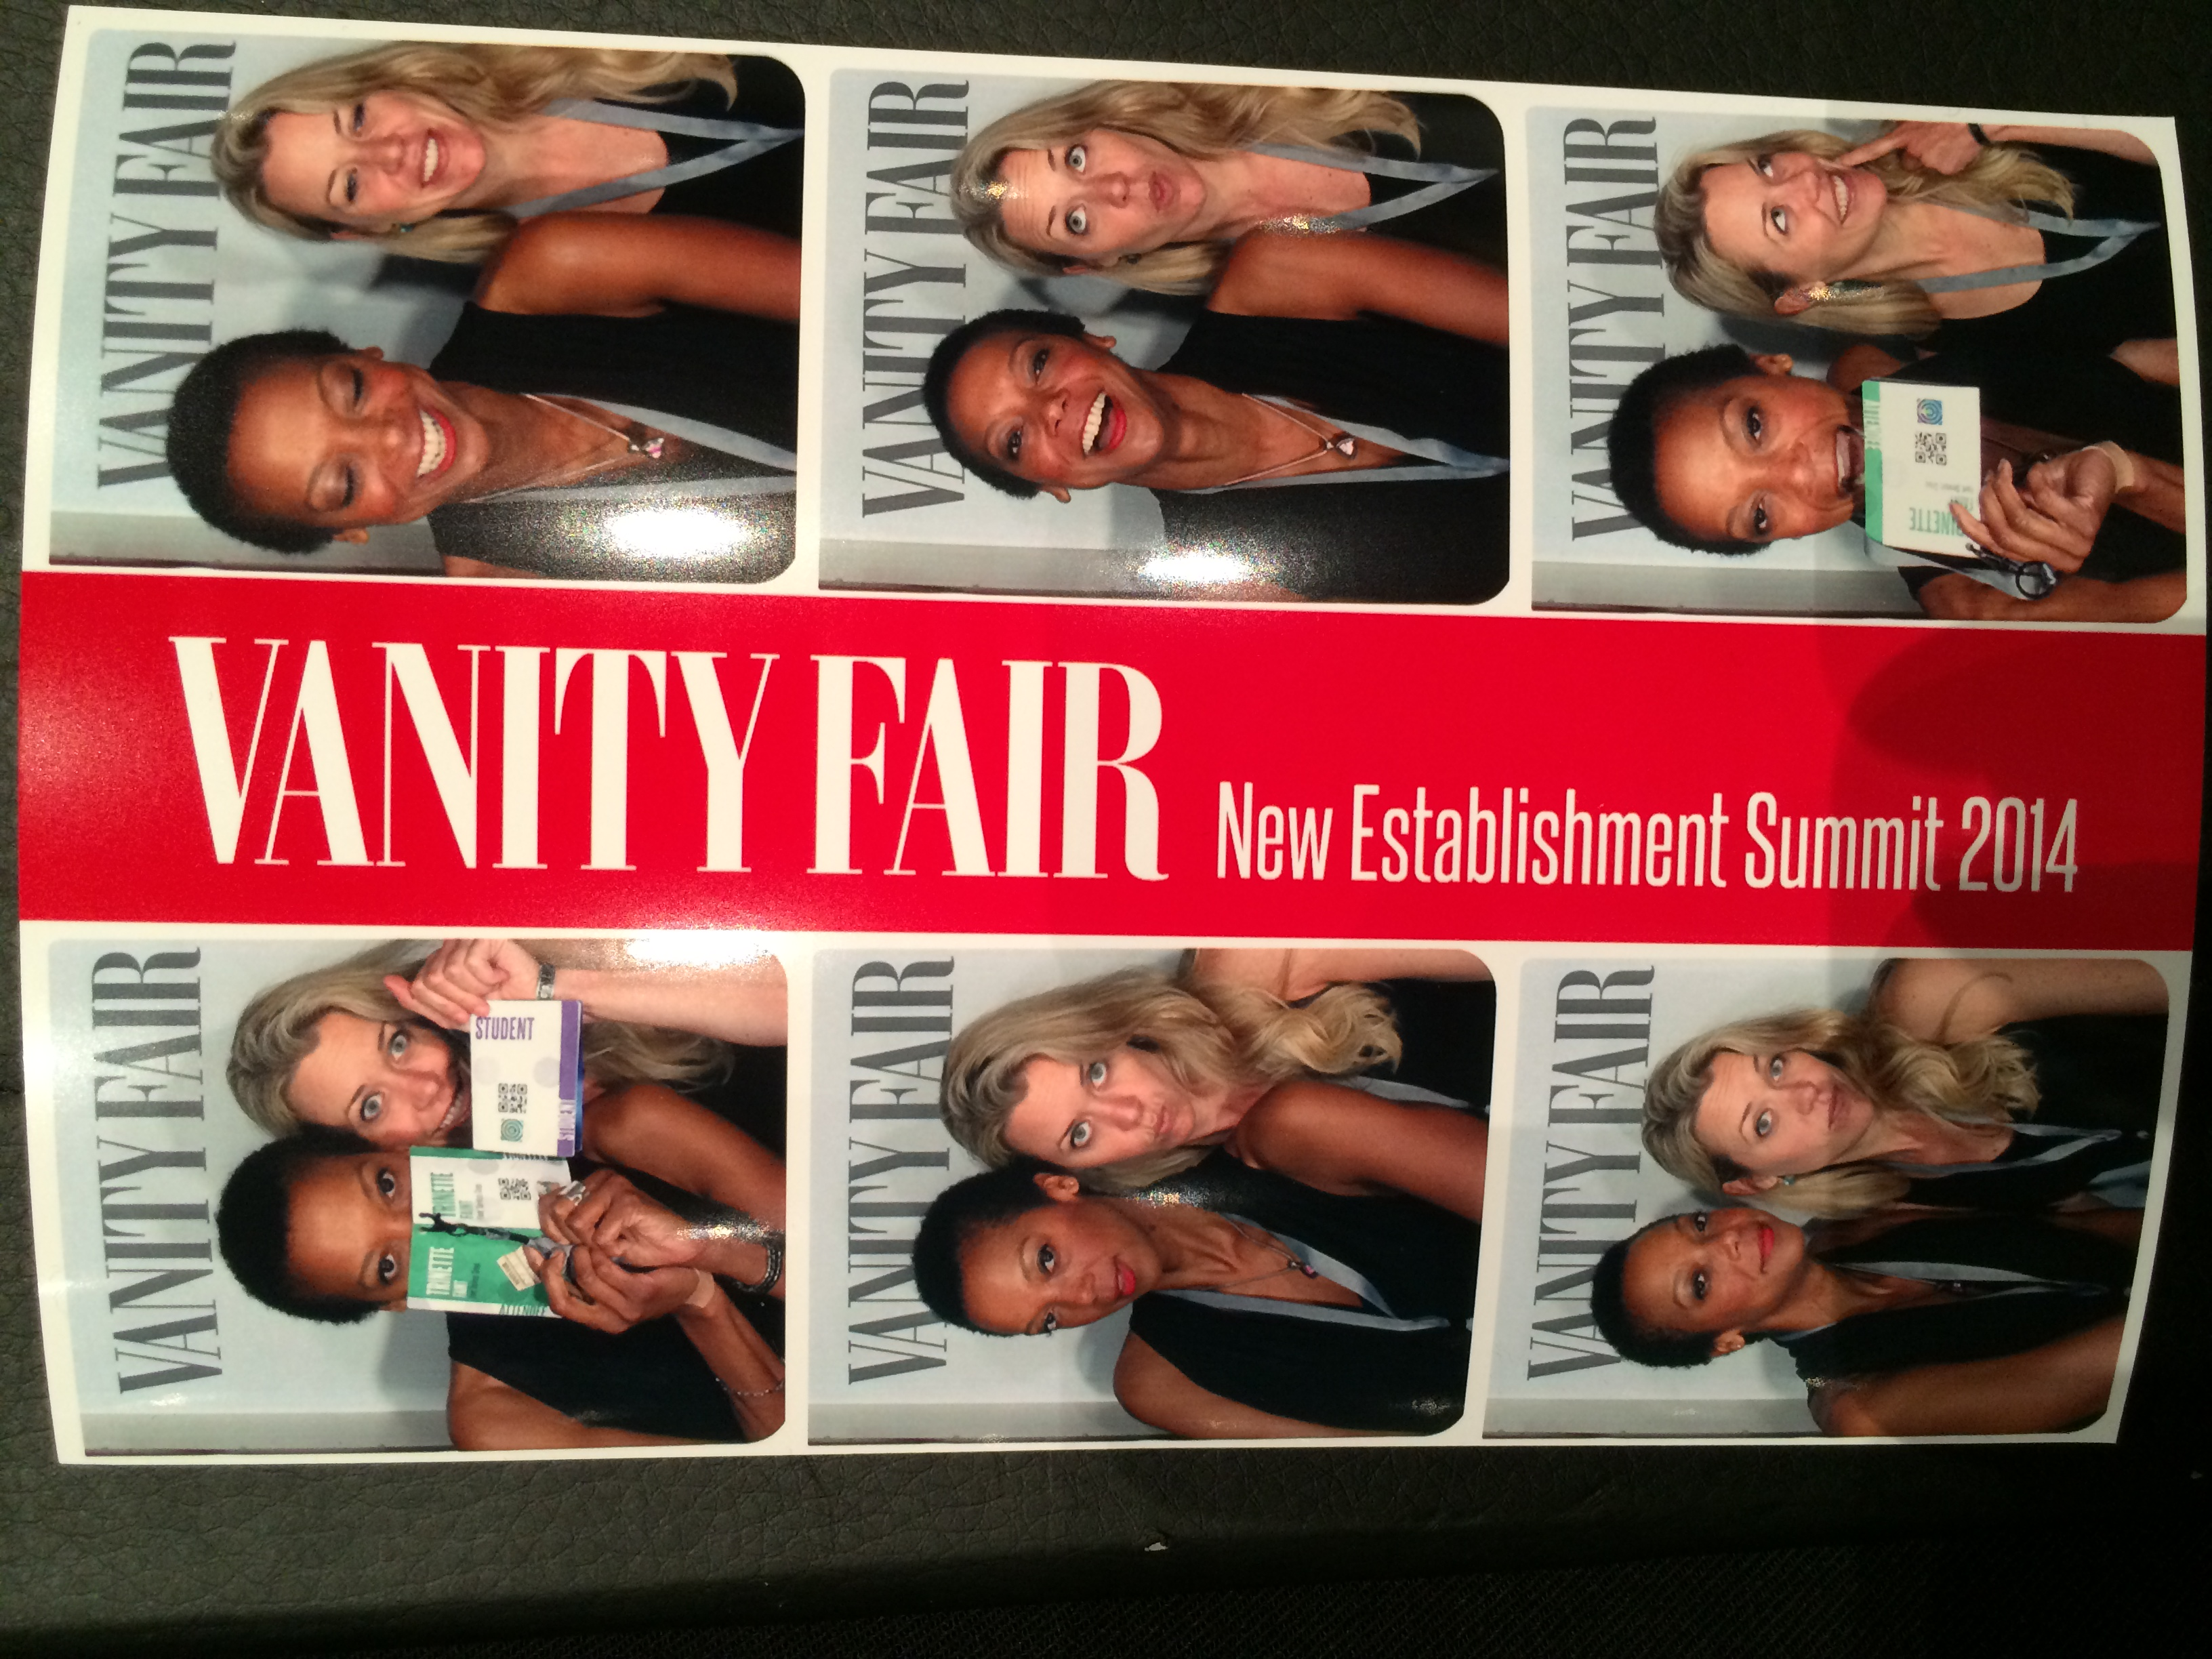 Photo booth funnin' with architect Danielle Wyss.